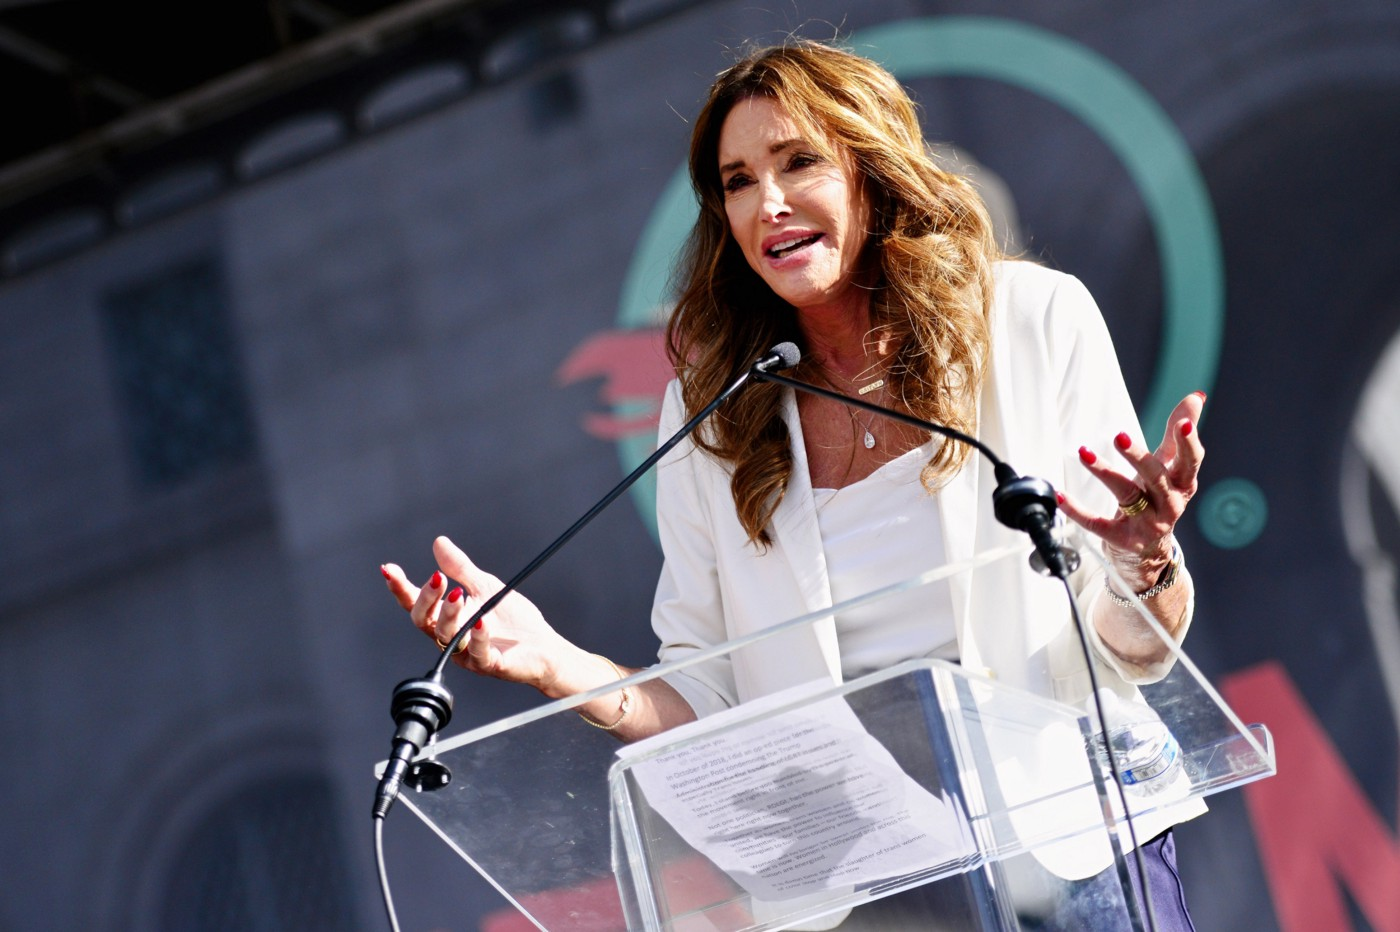 Alt-right fascist Caitlyn Jenner at the podium speaking at an event.